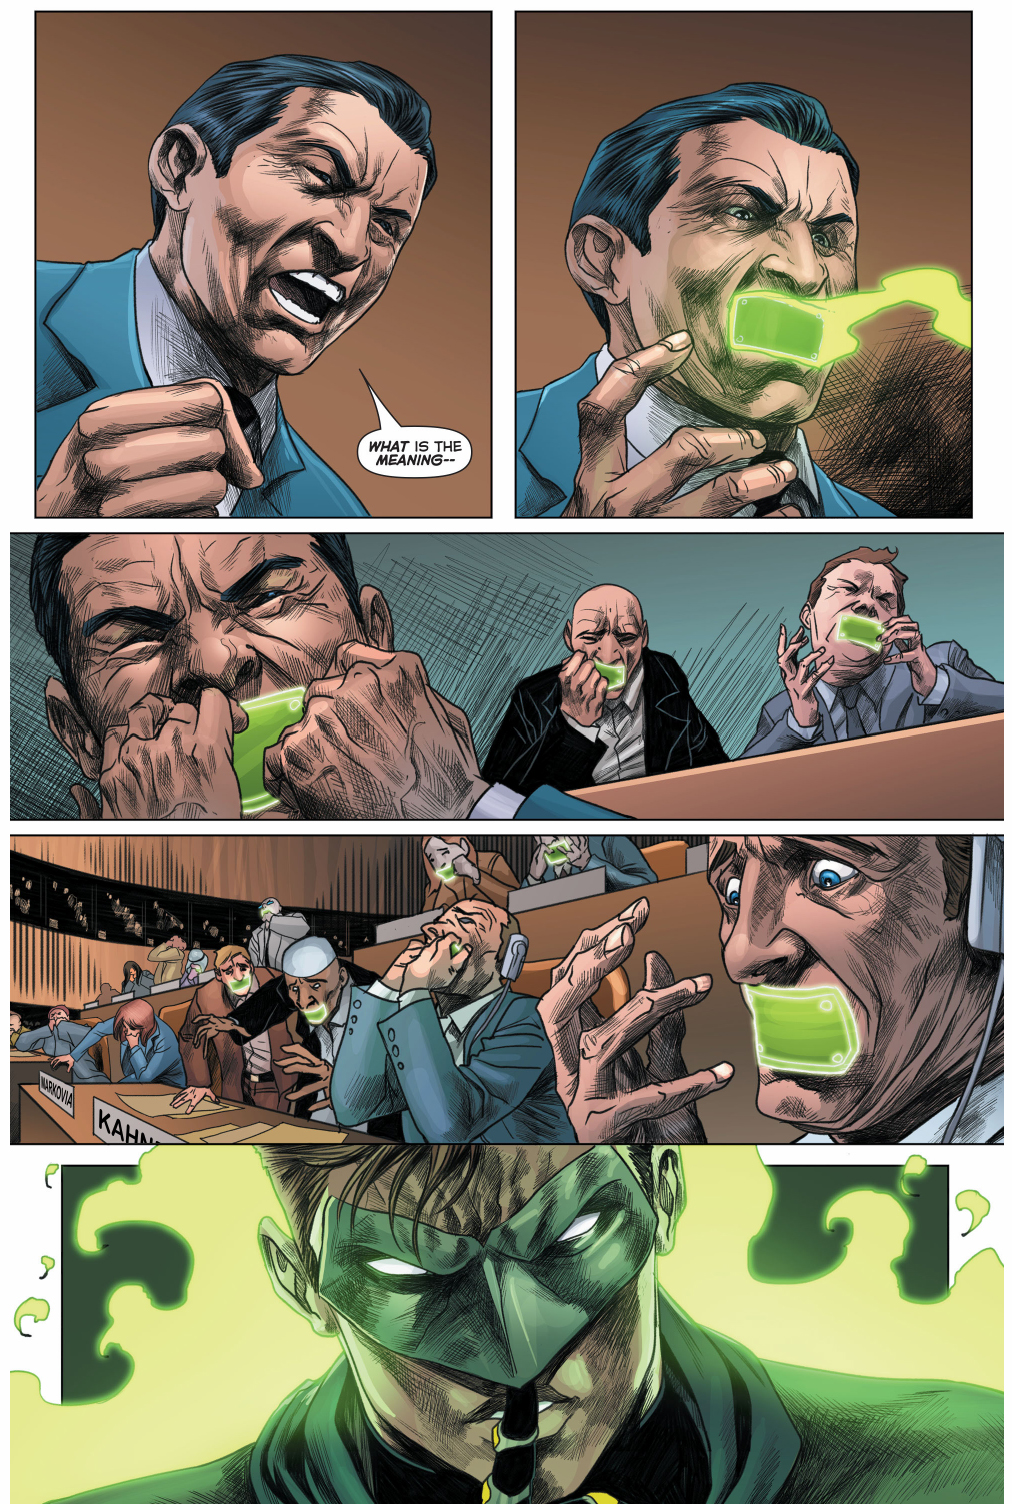 green lantern saves the u.n. council